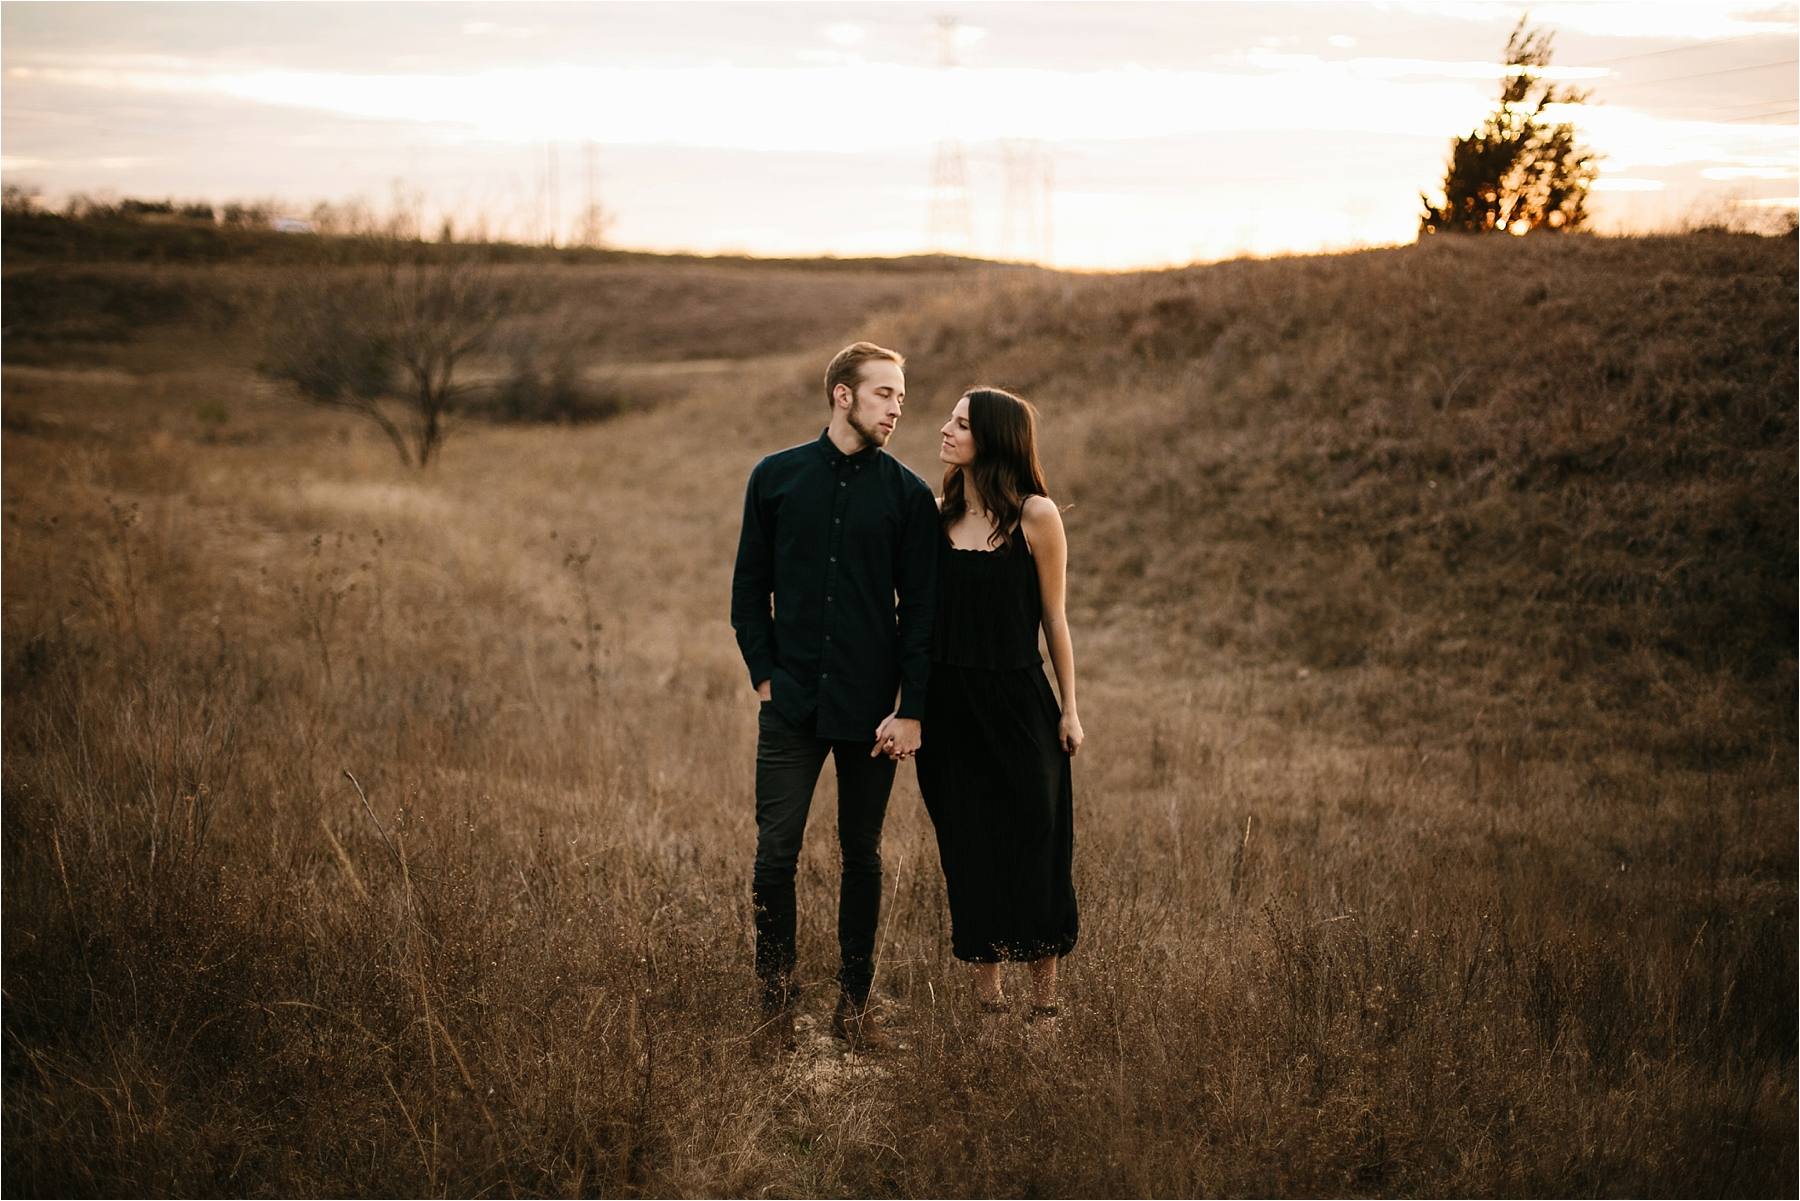 Trey + Phoebe __ a playful, intimate engagement session with dark_neutral outfit inspiration by North Texas Wedding Photographer Rachel Meagan Photography __ 38